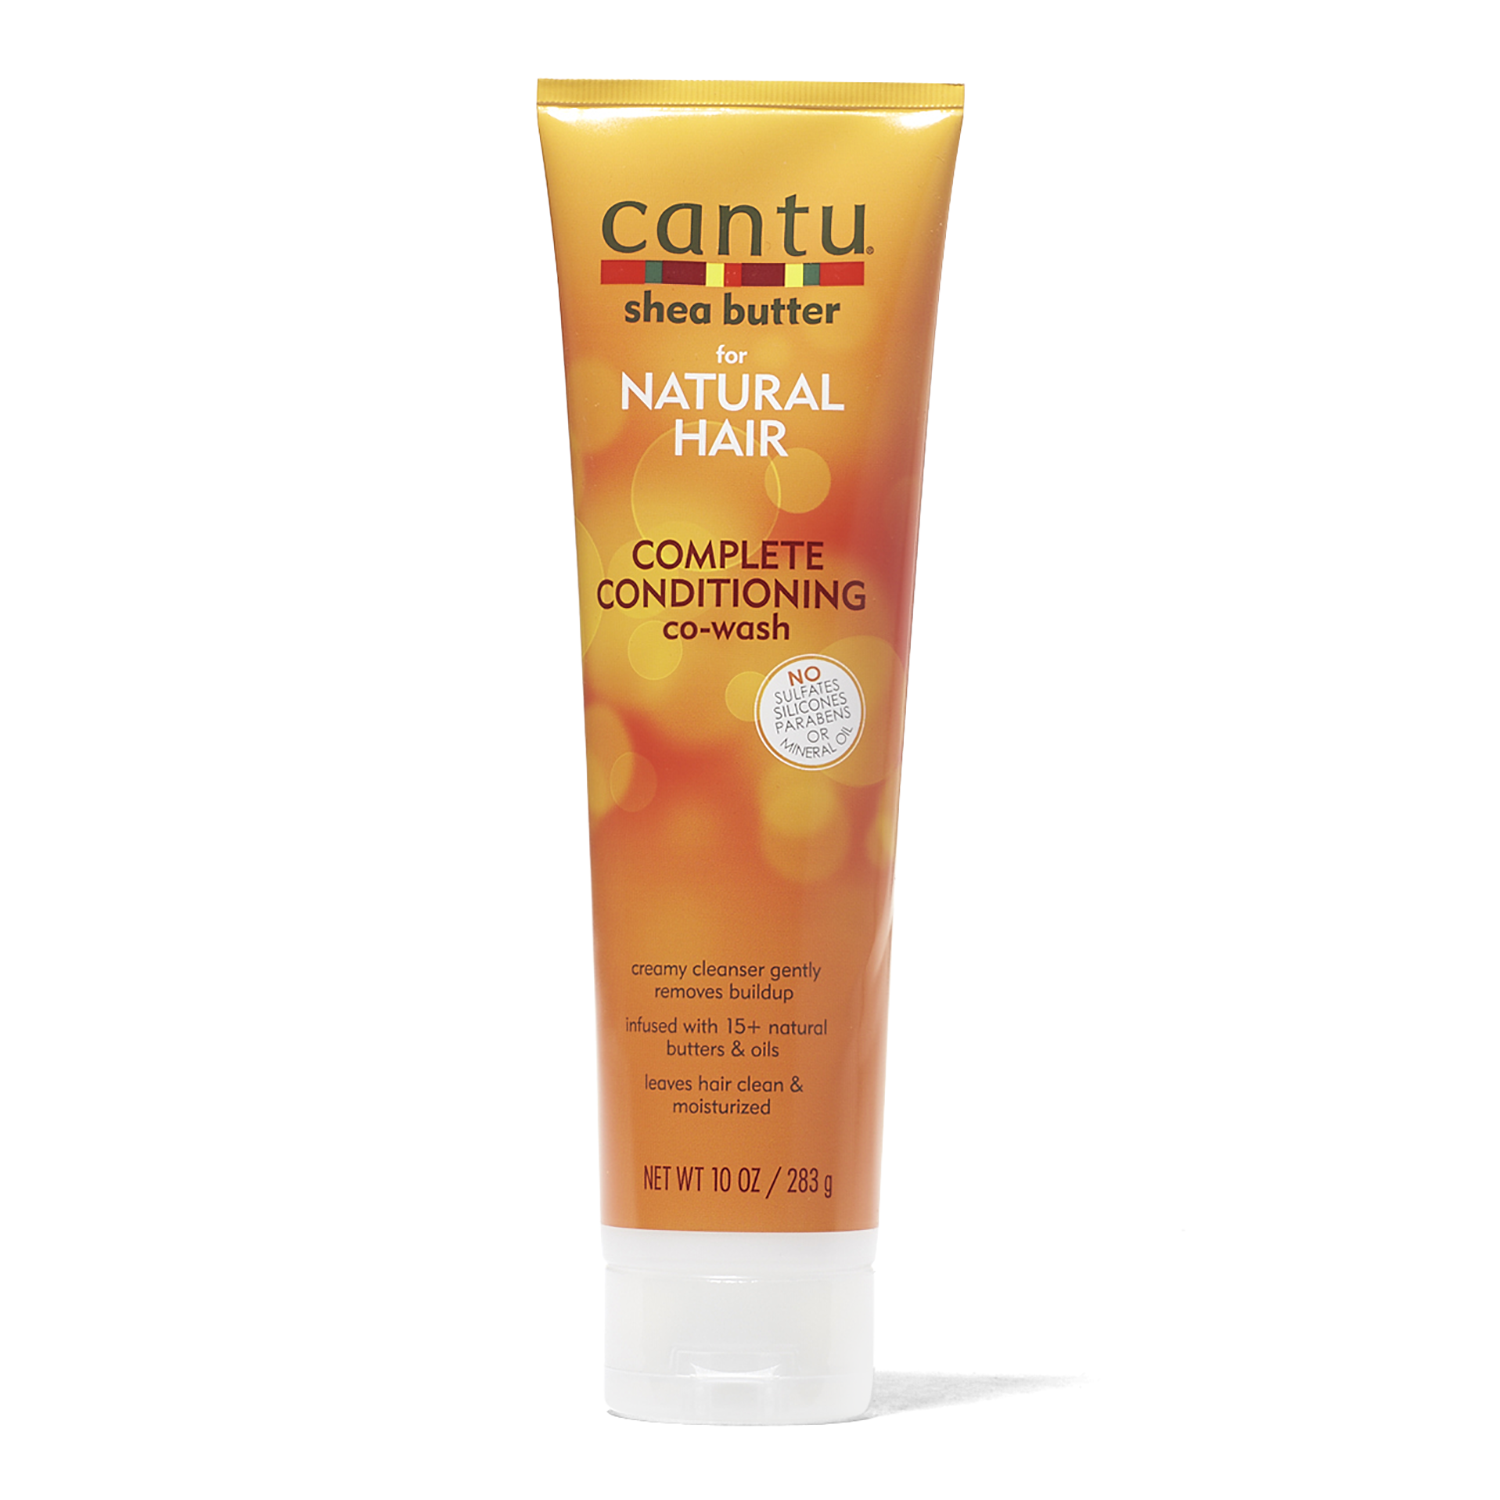 Sally Beauty coupon: Cantu Complete Conditioning Co-Wash | 10 oz. | Sally Beauty